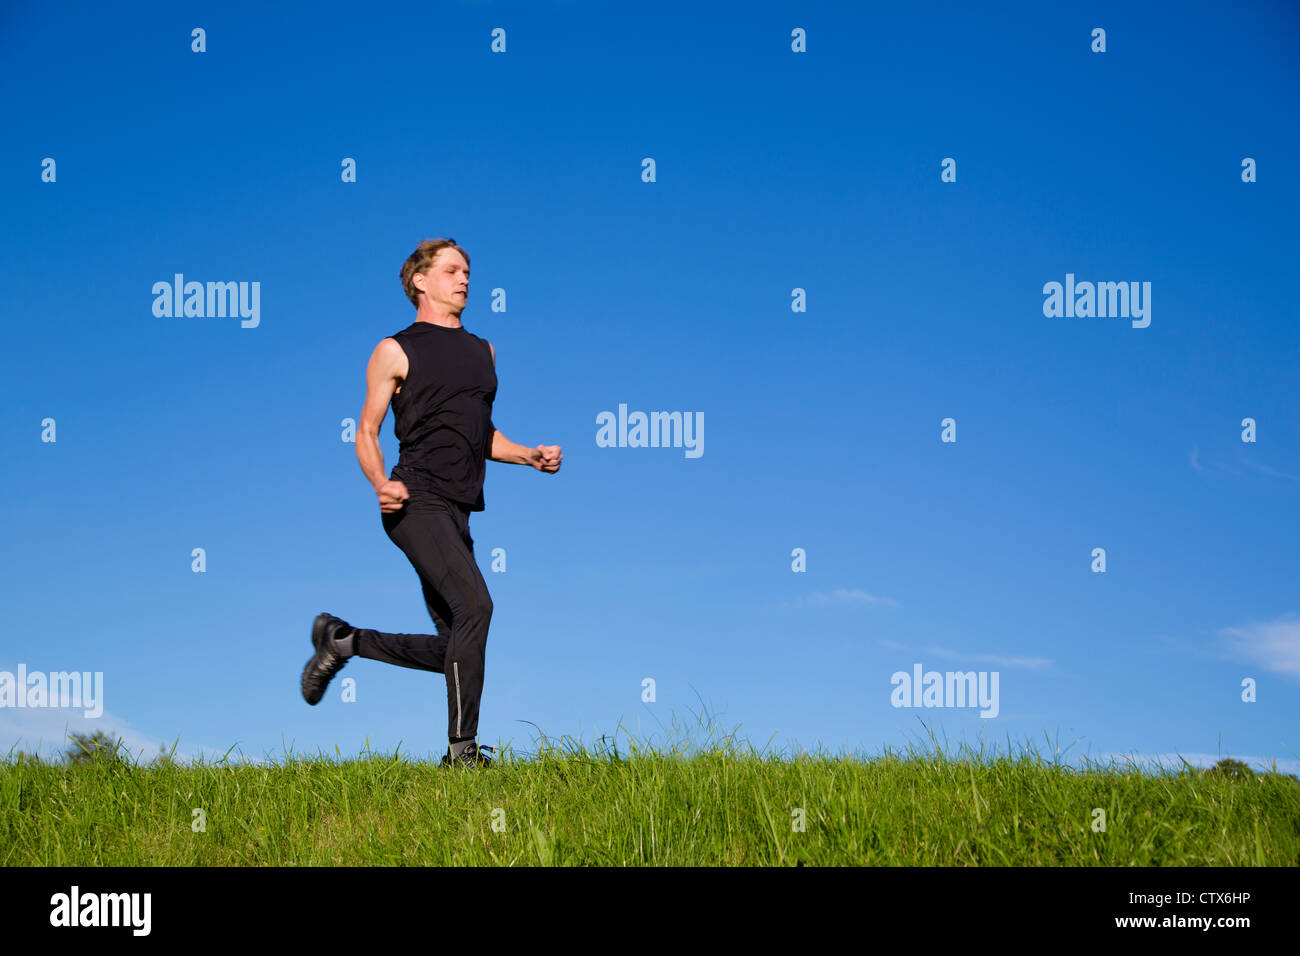 All muscles of sportsman is strained on exercise - Stock Image